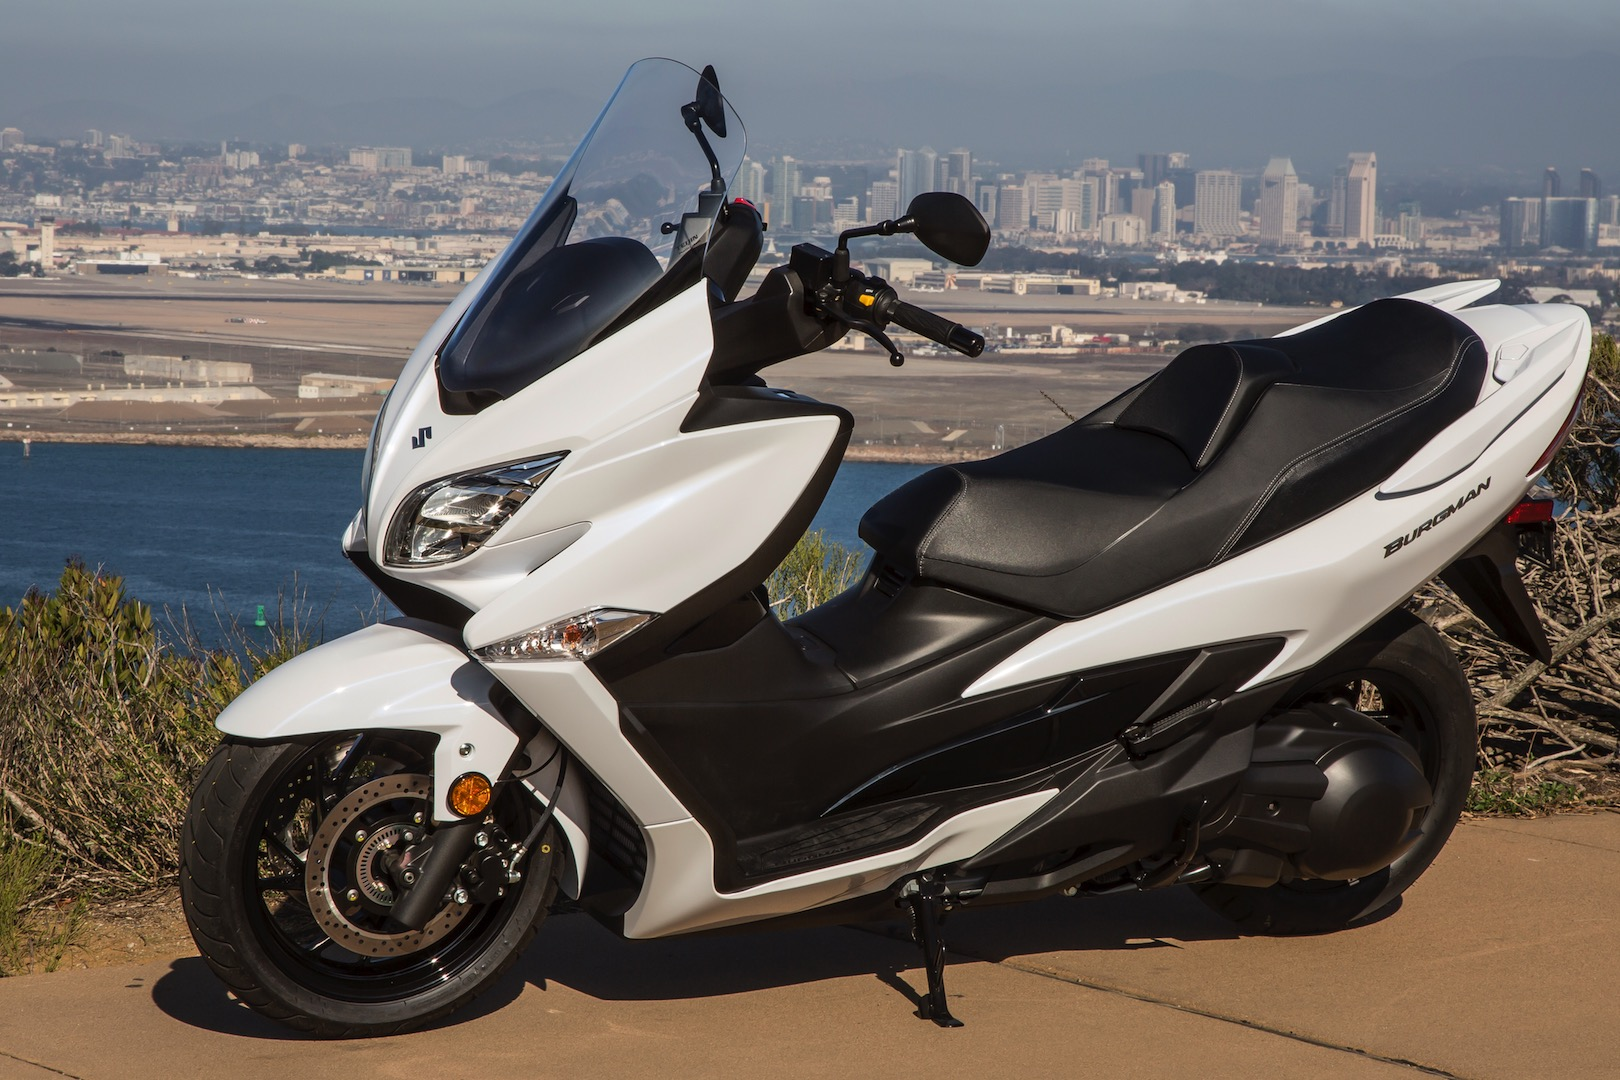 2018 suzuki burgman 400 abs review 14 fast facts. Black Bedroom Furniture Sets. Home Design Ideas